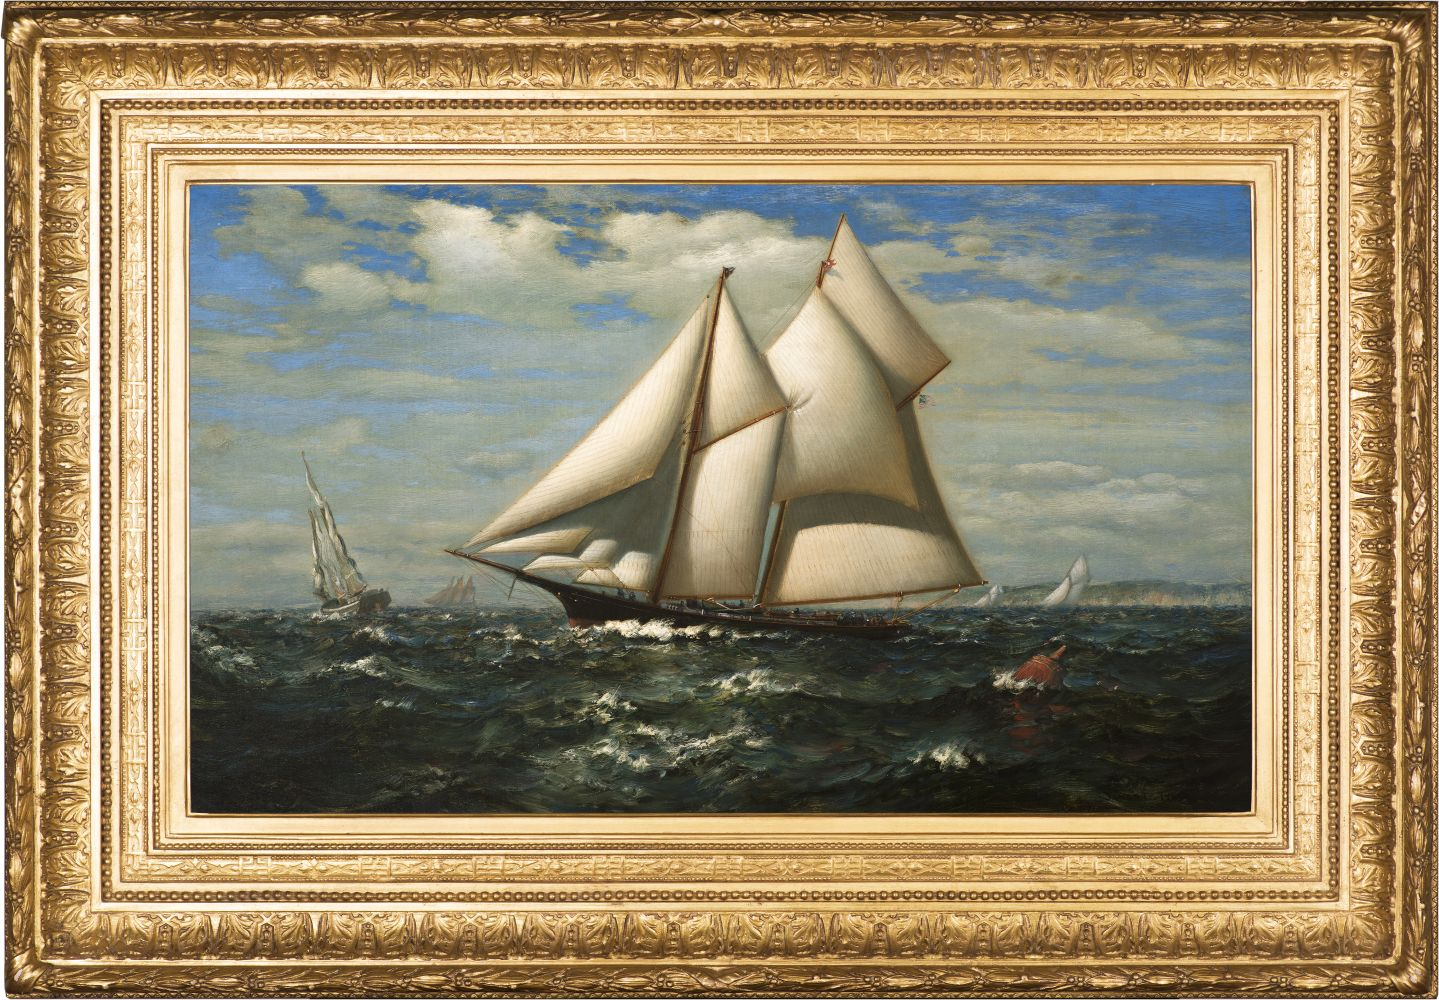 James Gale Tyler (1855–1931), The Yacht, Water Witch, oil on canvas, 18 x 30 in., signed lower right: James G. Tyler (framed)